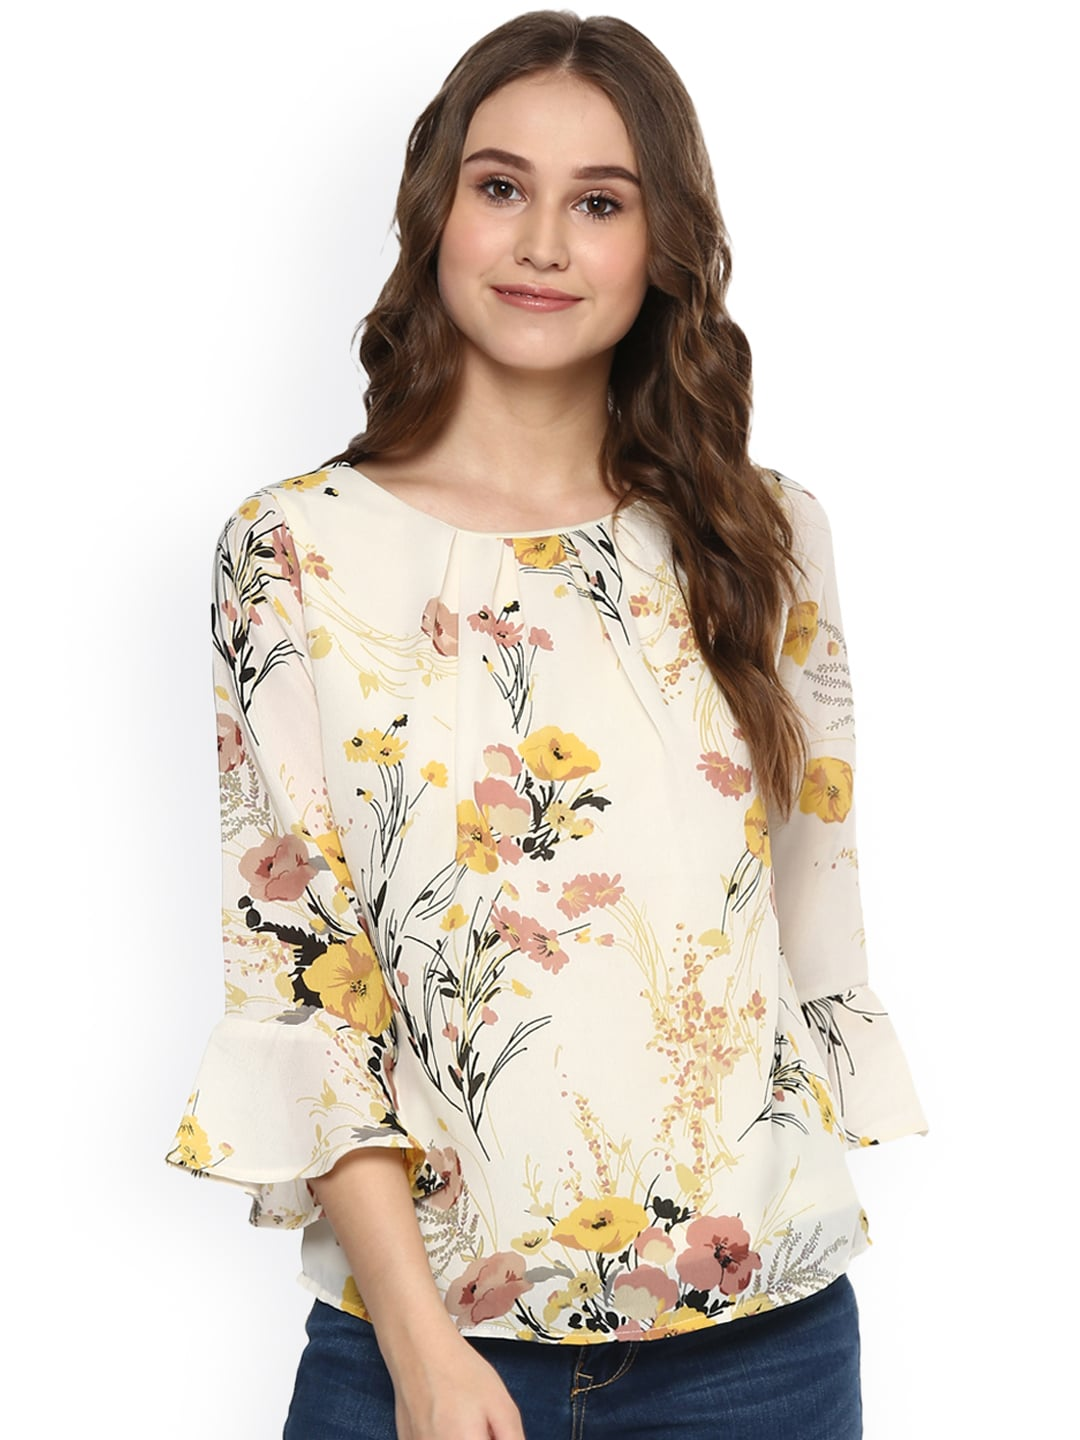 3c210431827e57 Floral Print Tops - Buy Floral Print Tops online in India